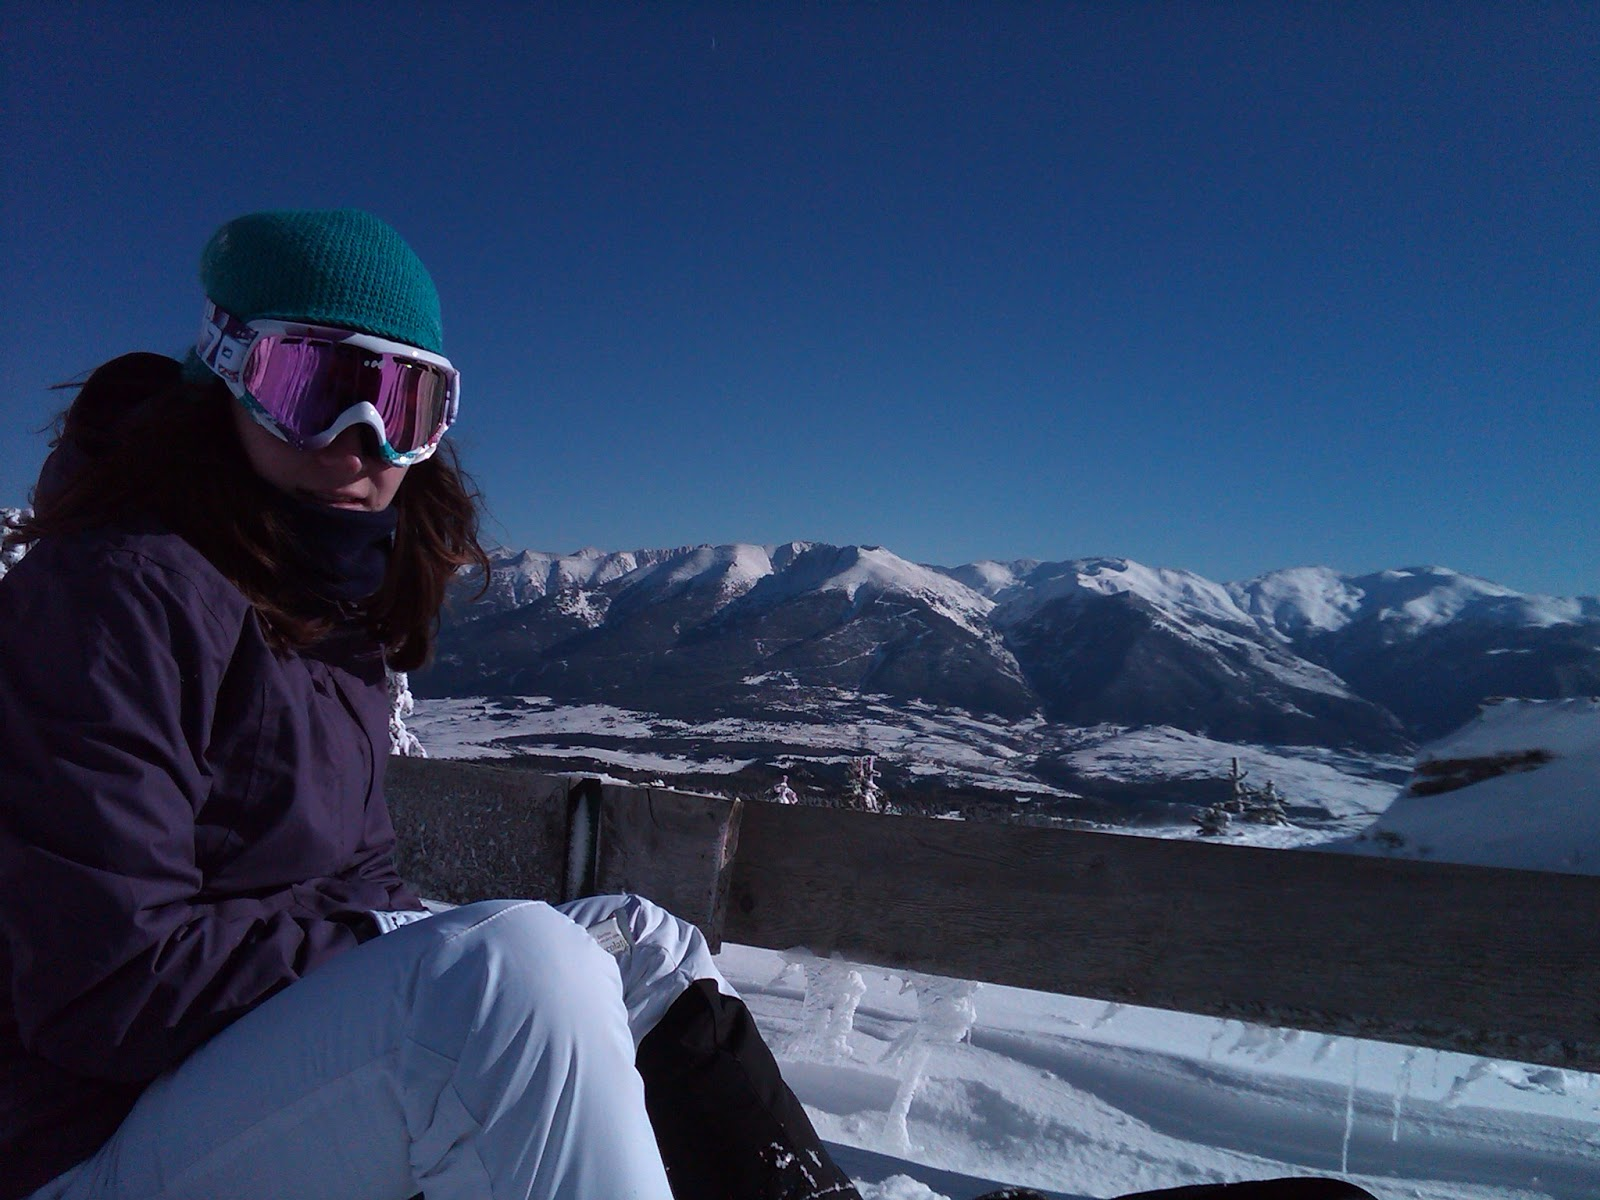 snowboarding in the pyreneees